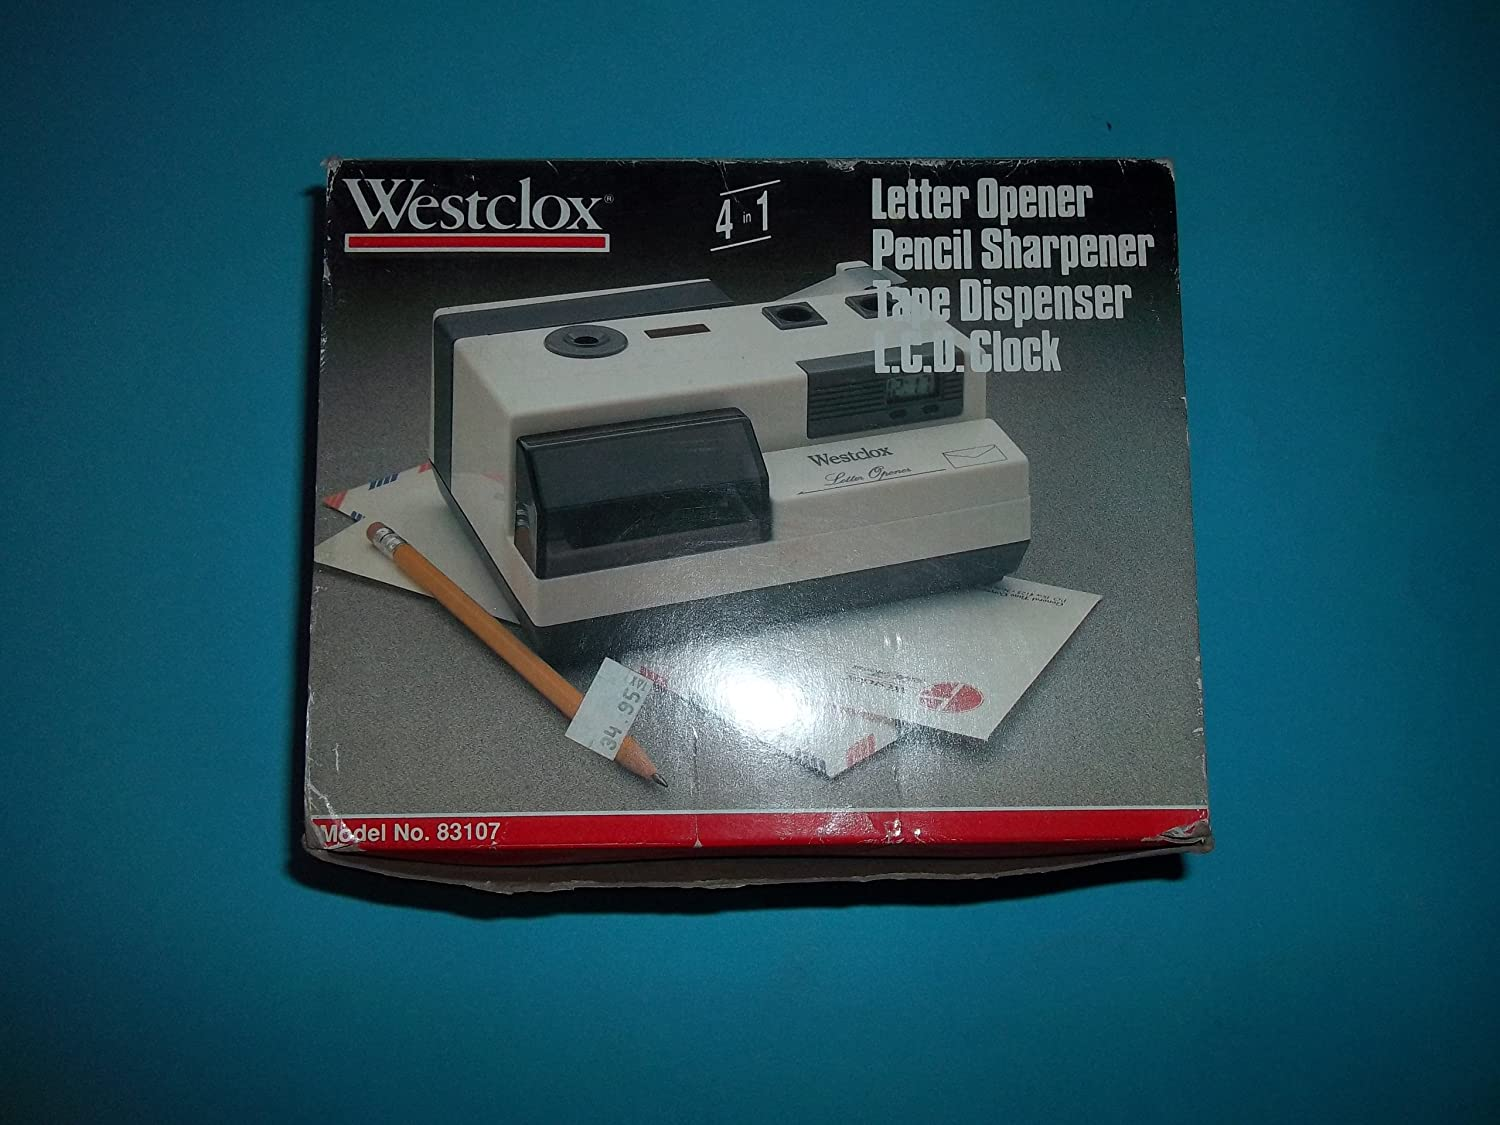 Westclox 83107 4 in 1 Letter Opener Pencil Sharpener Tape Dispenser LCD Clock Battery Operated Can Use AC Made in China